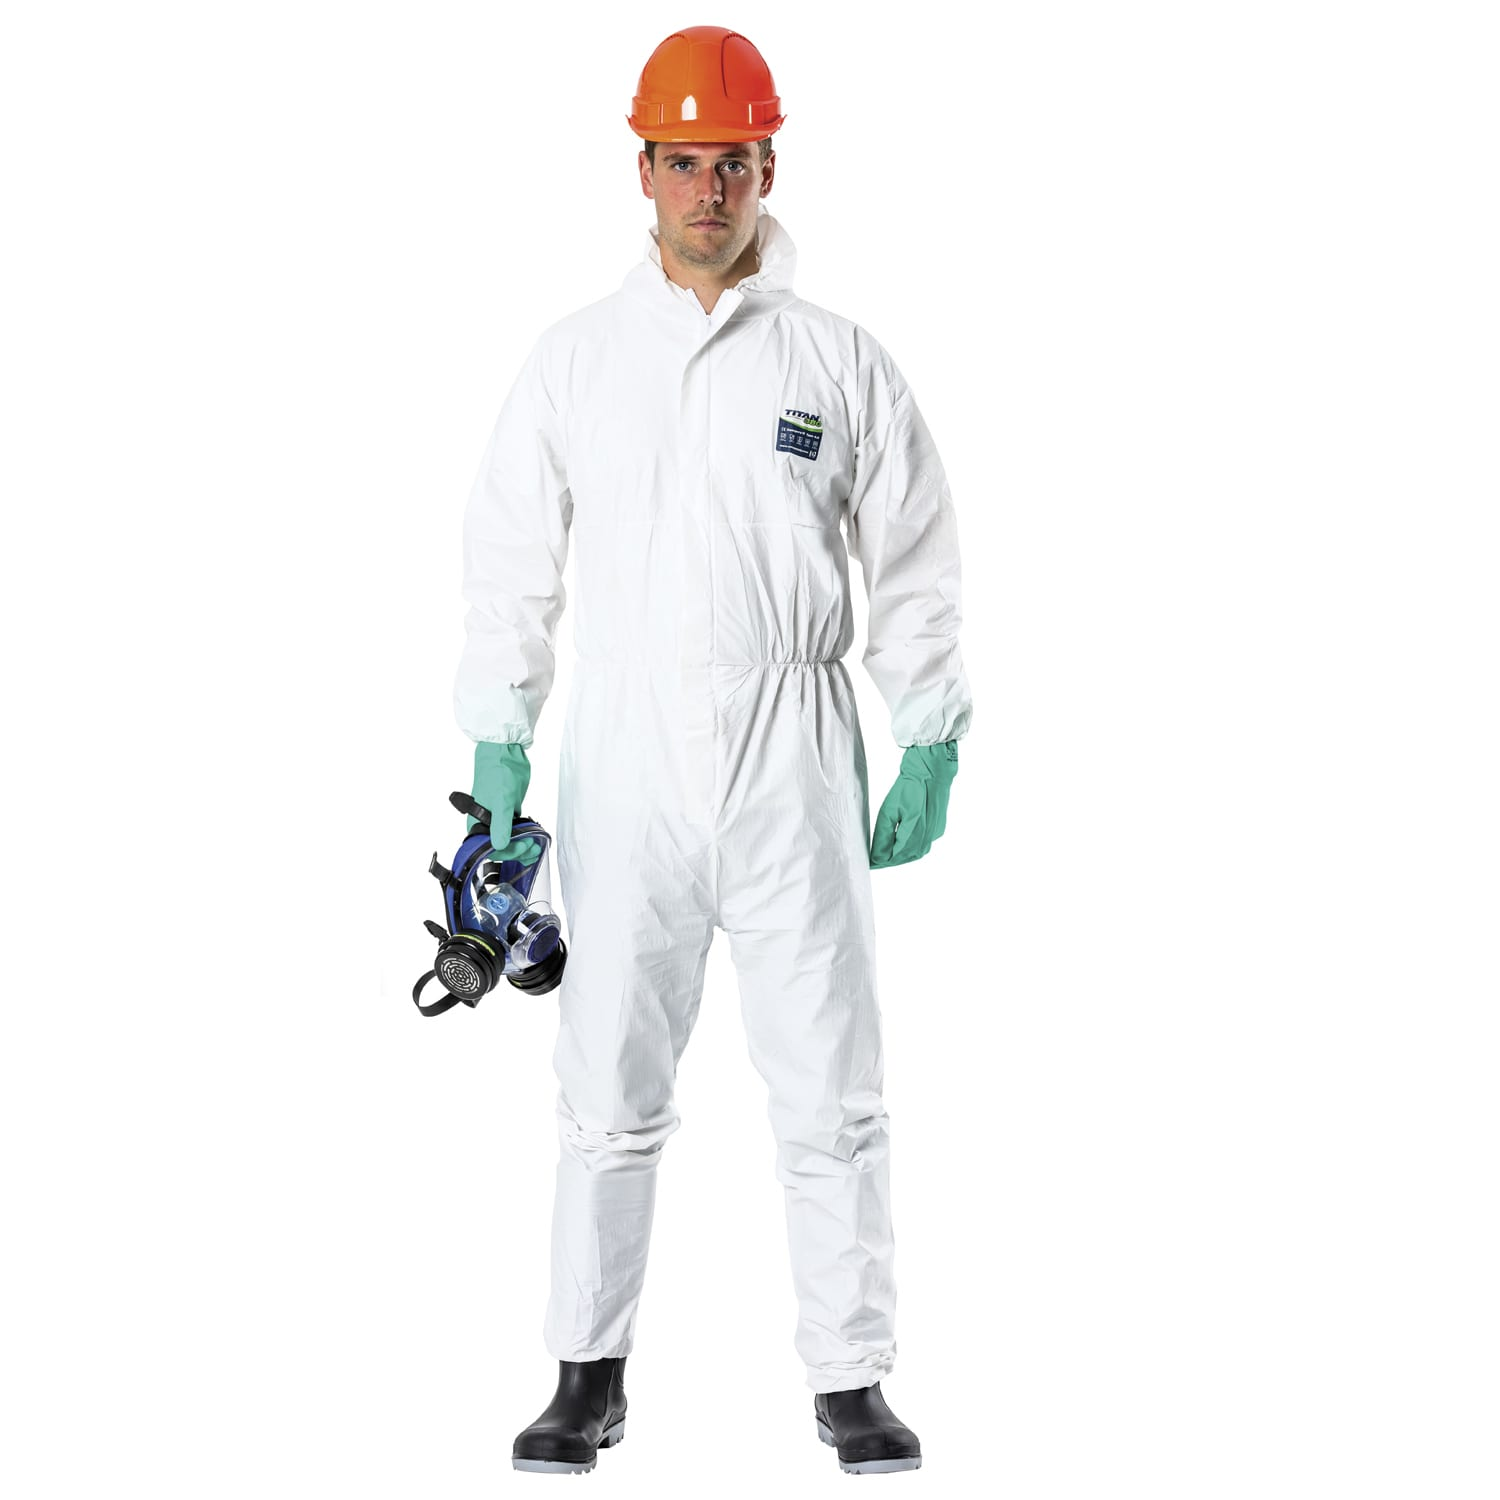 Spraysuit 380 coverall laminate white CAT III L